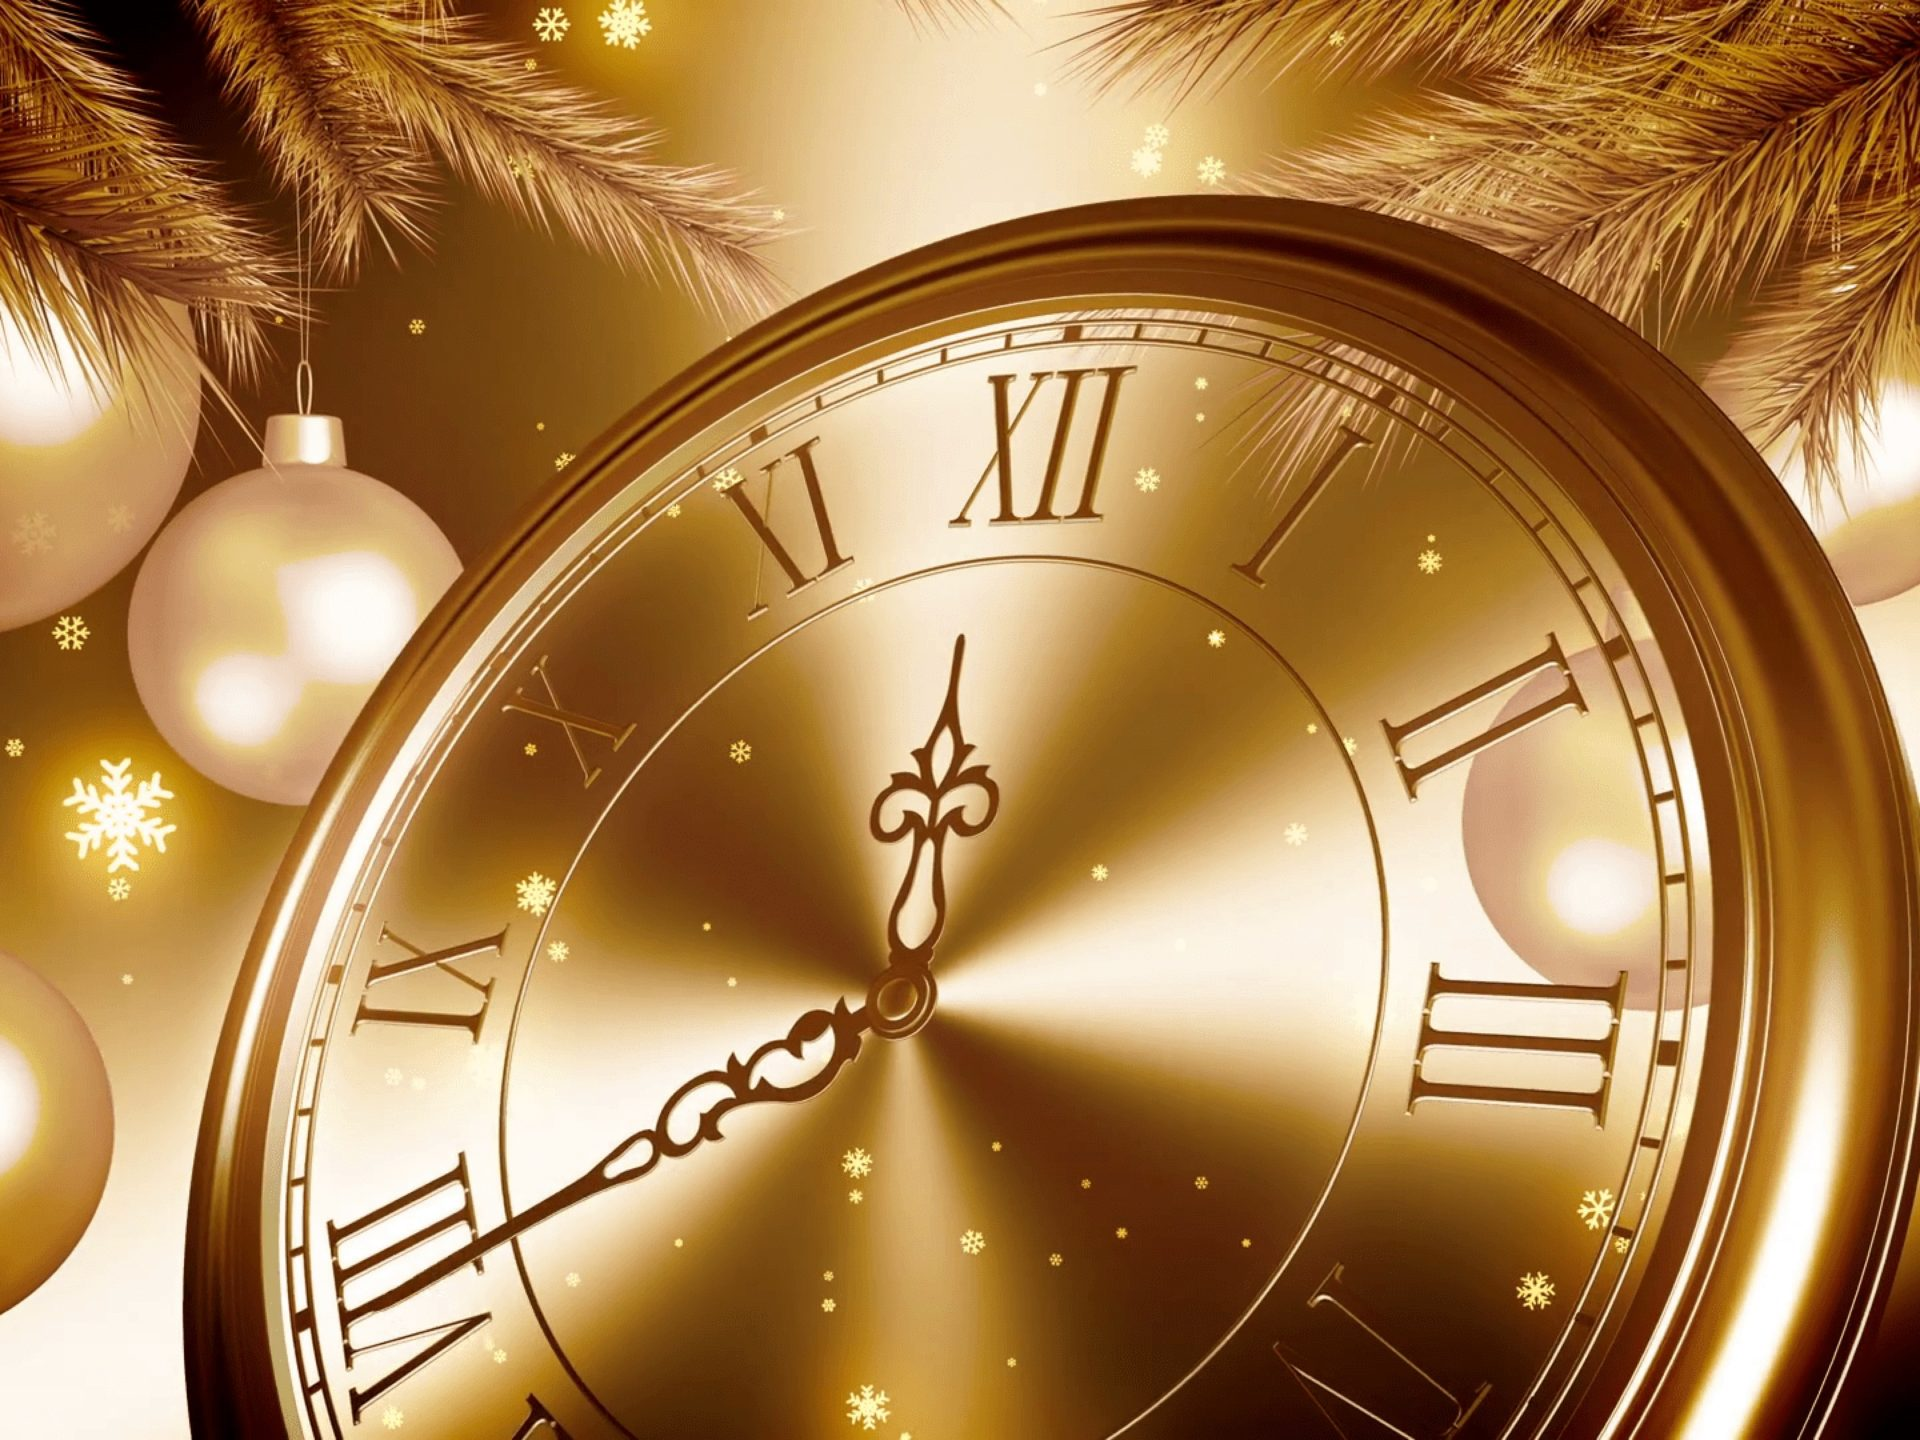 Happy New Year 2020 Golden Clock Countdown In New Years Eve 1920x1440